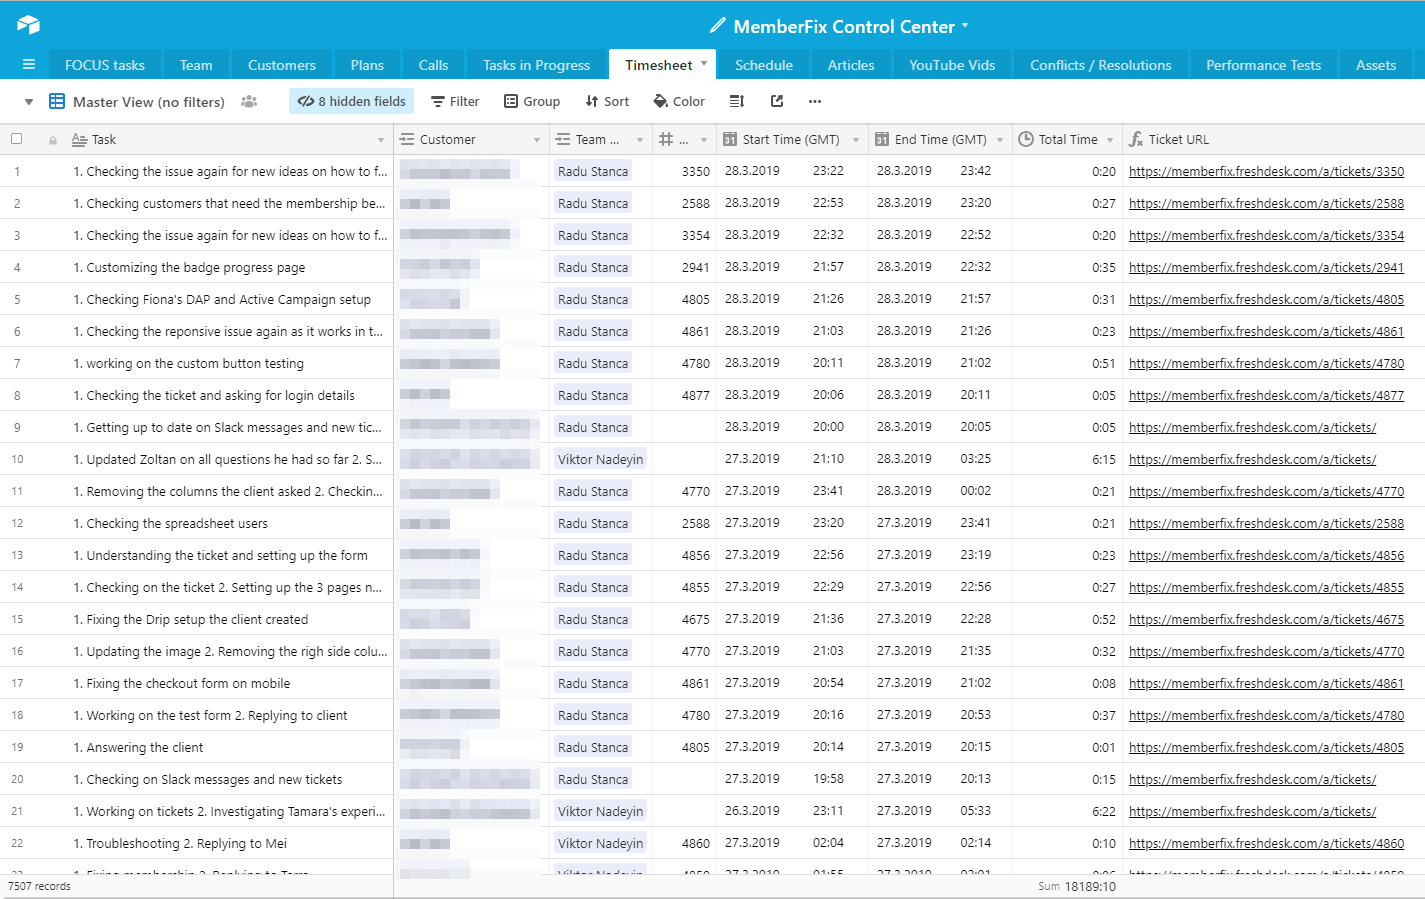 MemberFix Control Center Timesheet Airtable Google Chrome 2019 03 29 06.00.03 - How we track timesheet entries in Airtable